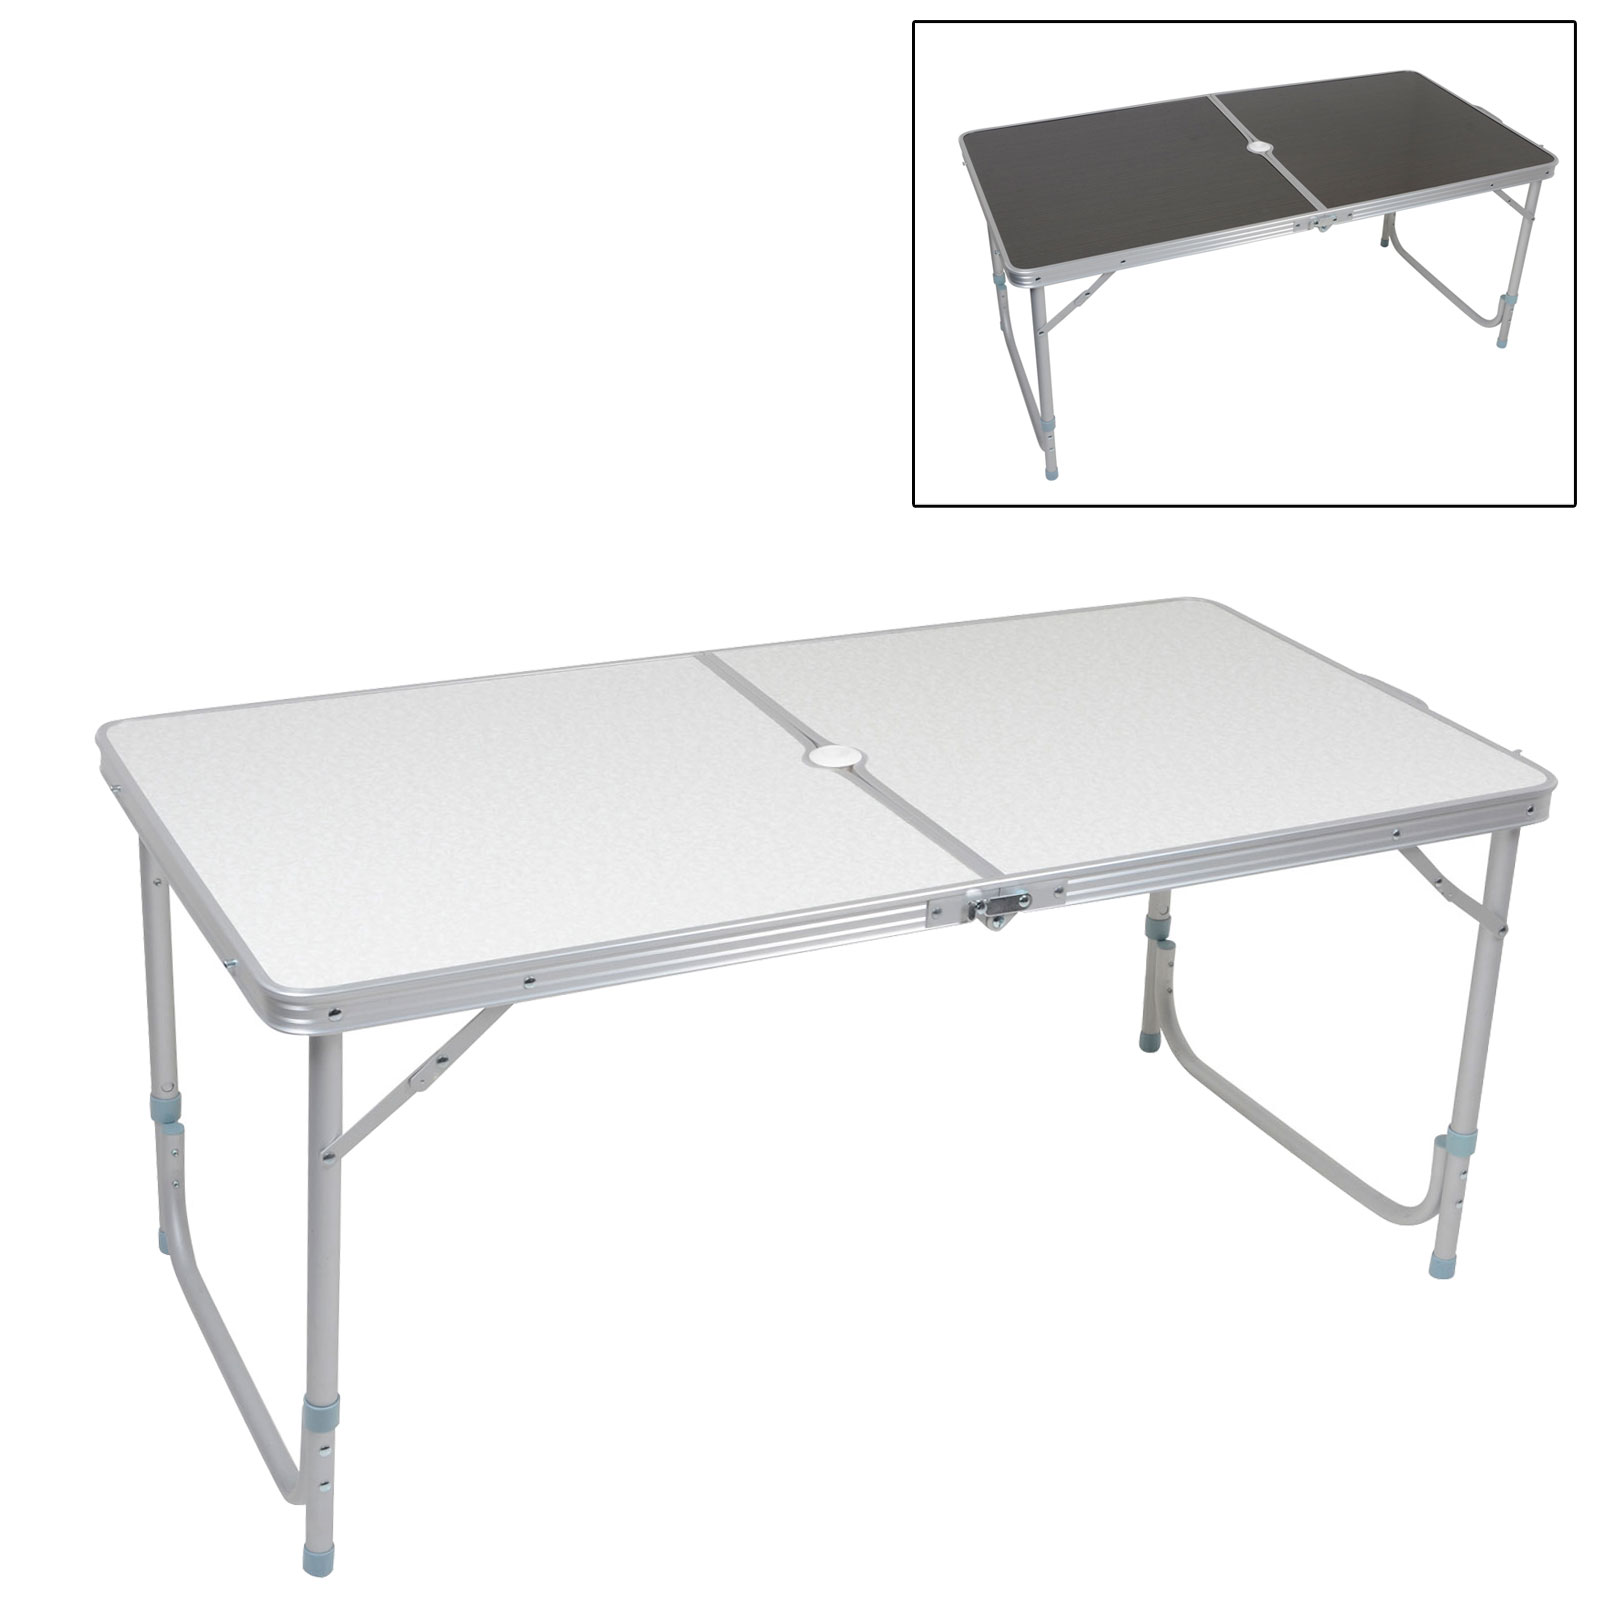 azuma folding portable camping outdoor dining table with